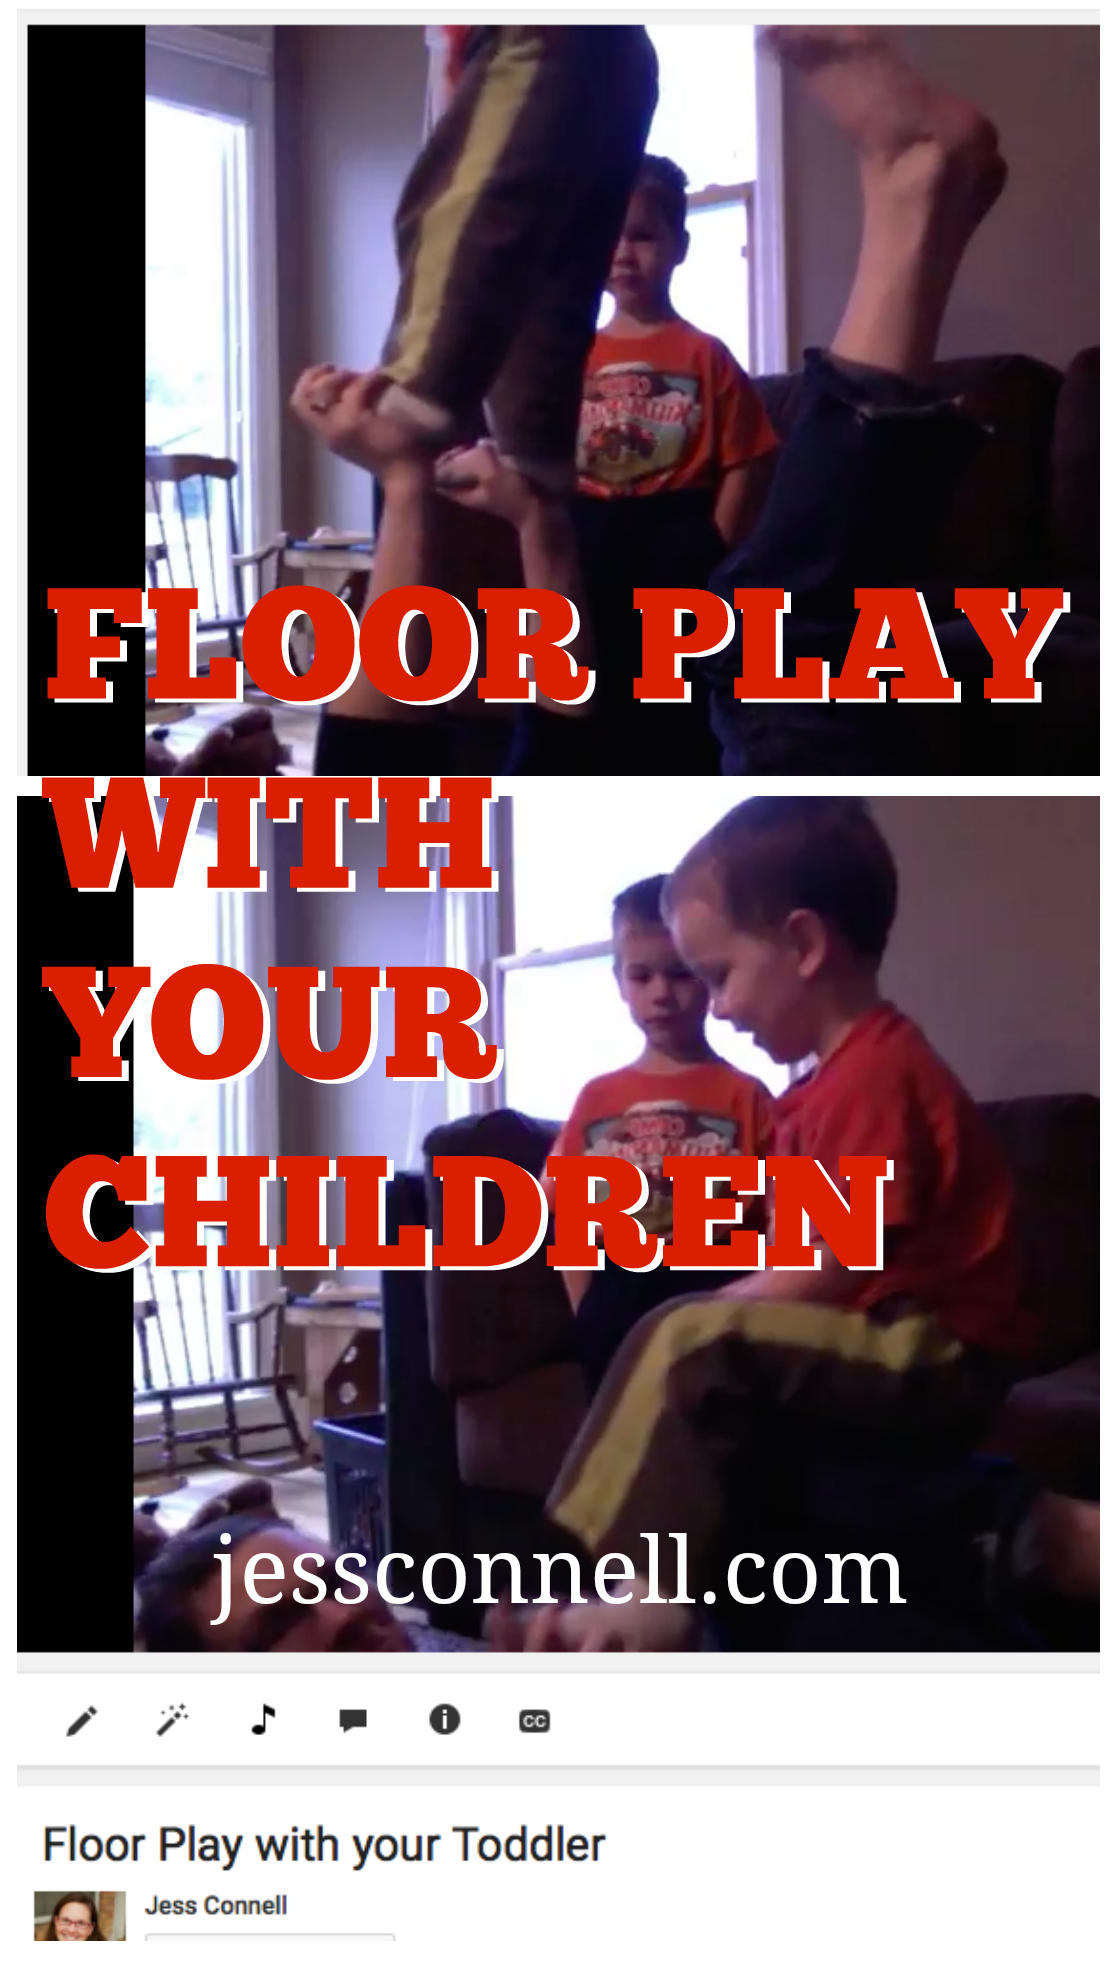 Floor Play with your Children // jessconnell.com